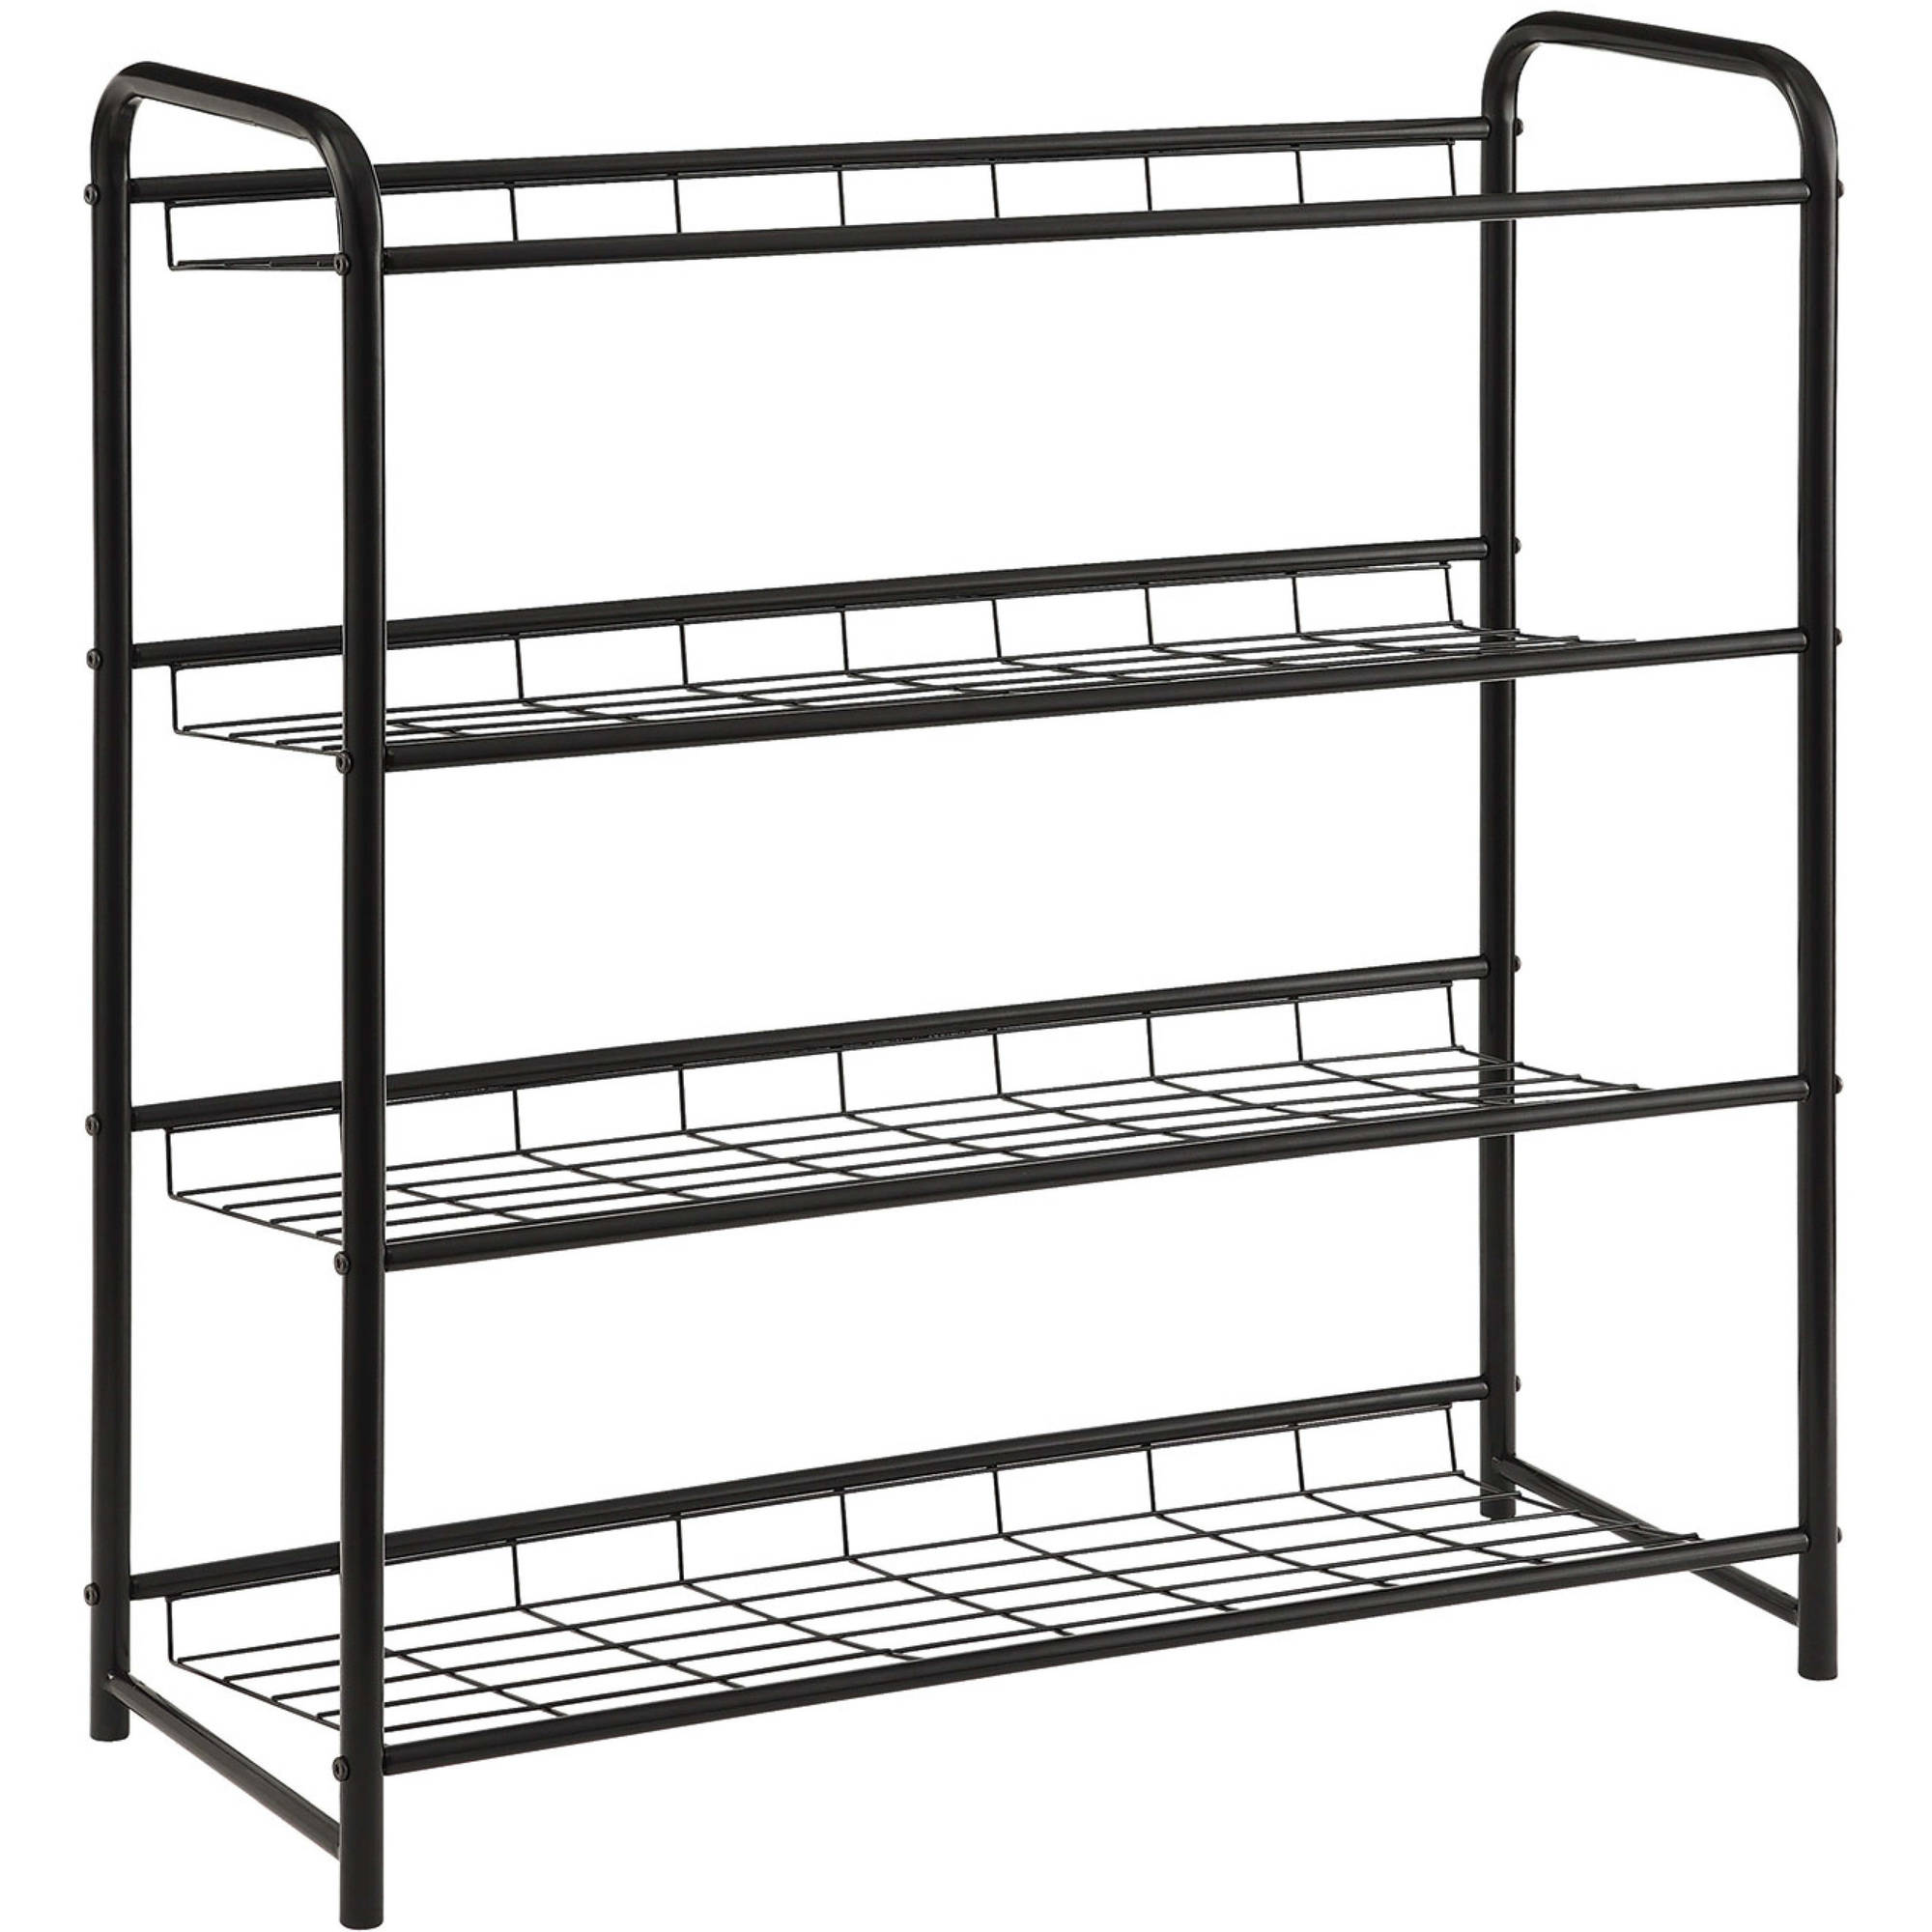 Coaster Company Shoe Rack, Black